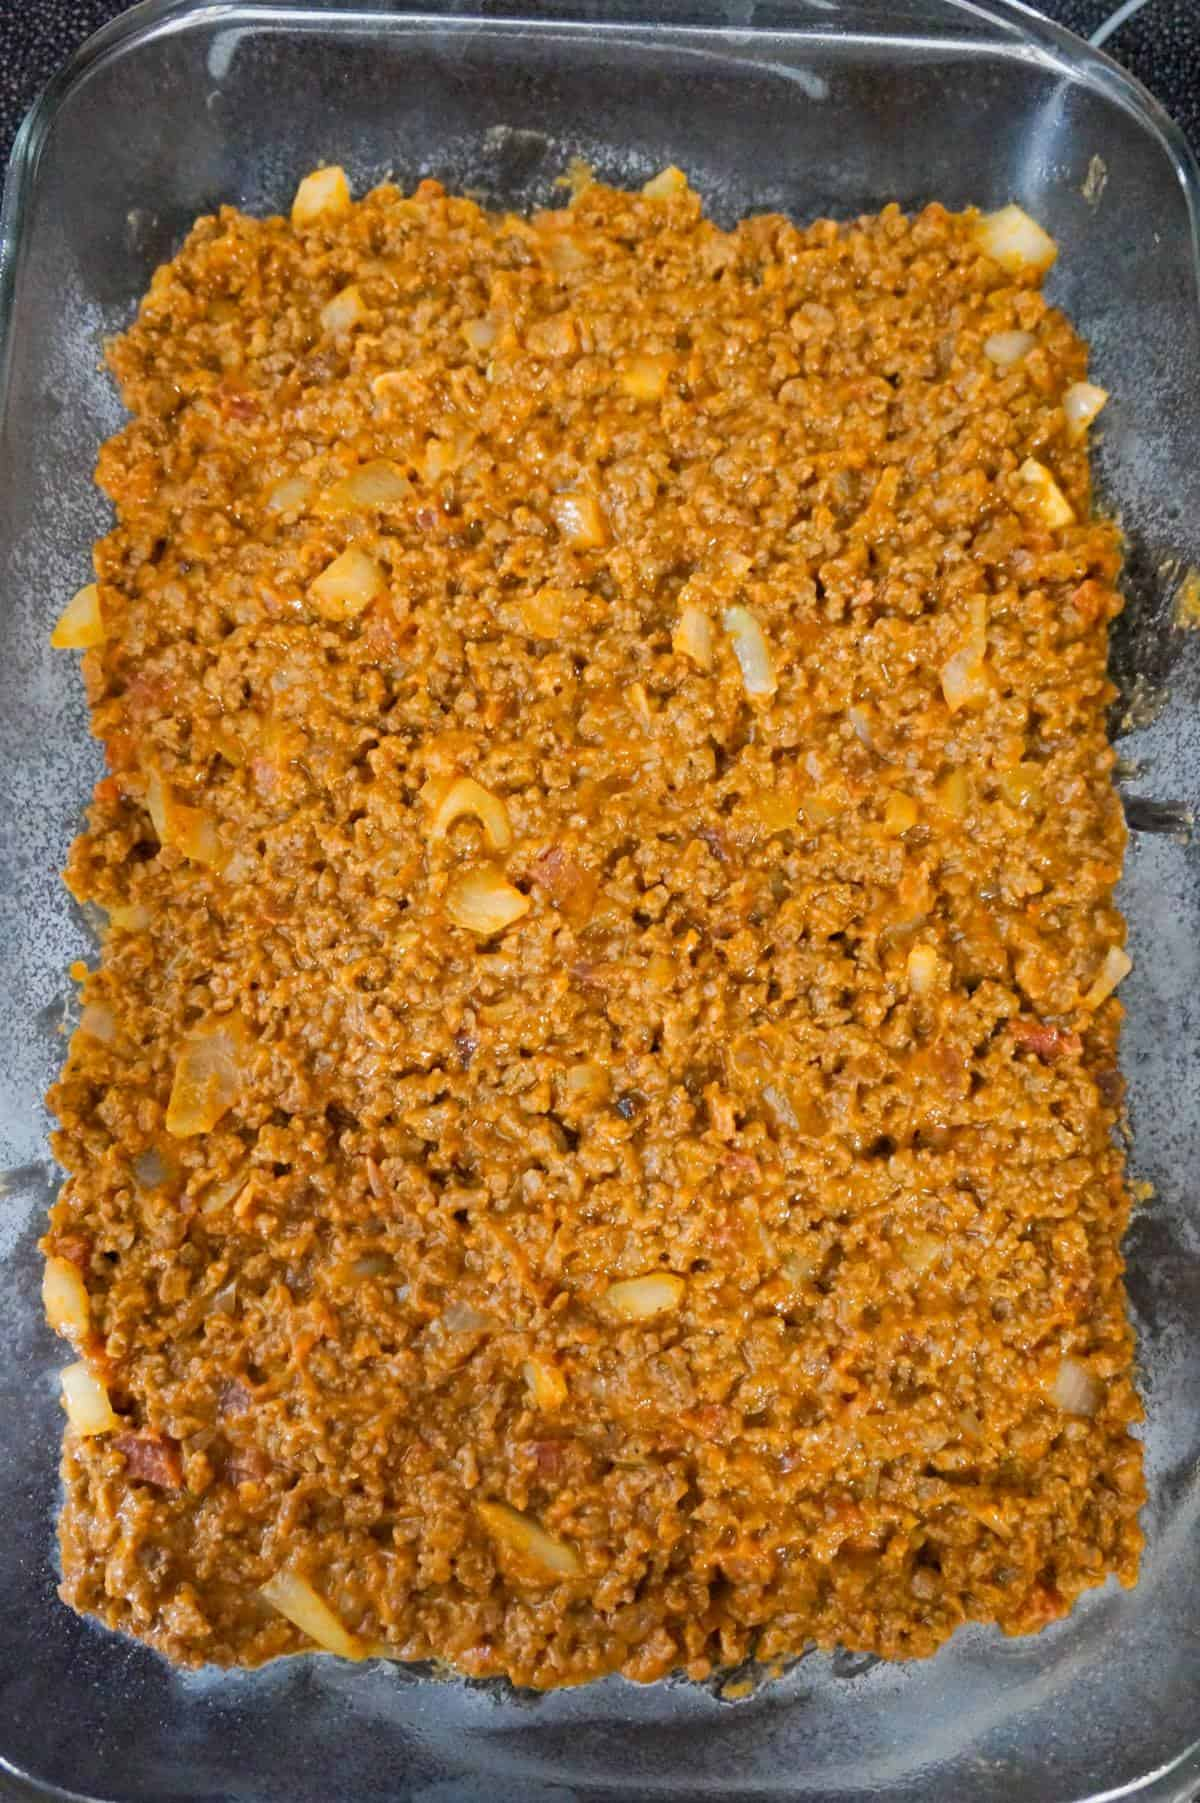 ground beef mixture in a 9 x 13 inch baking dish